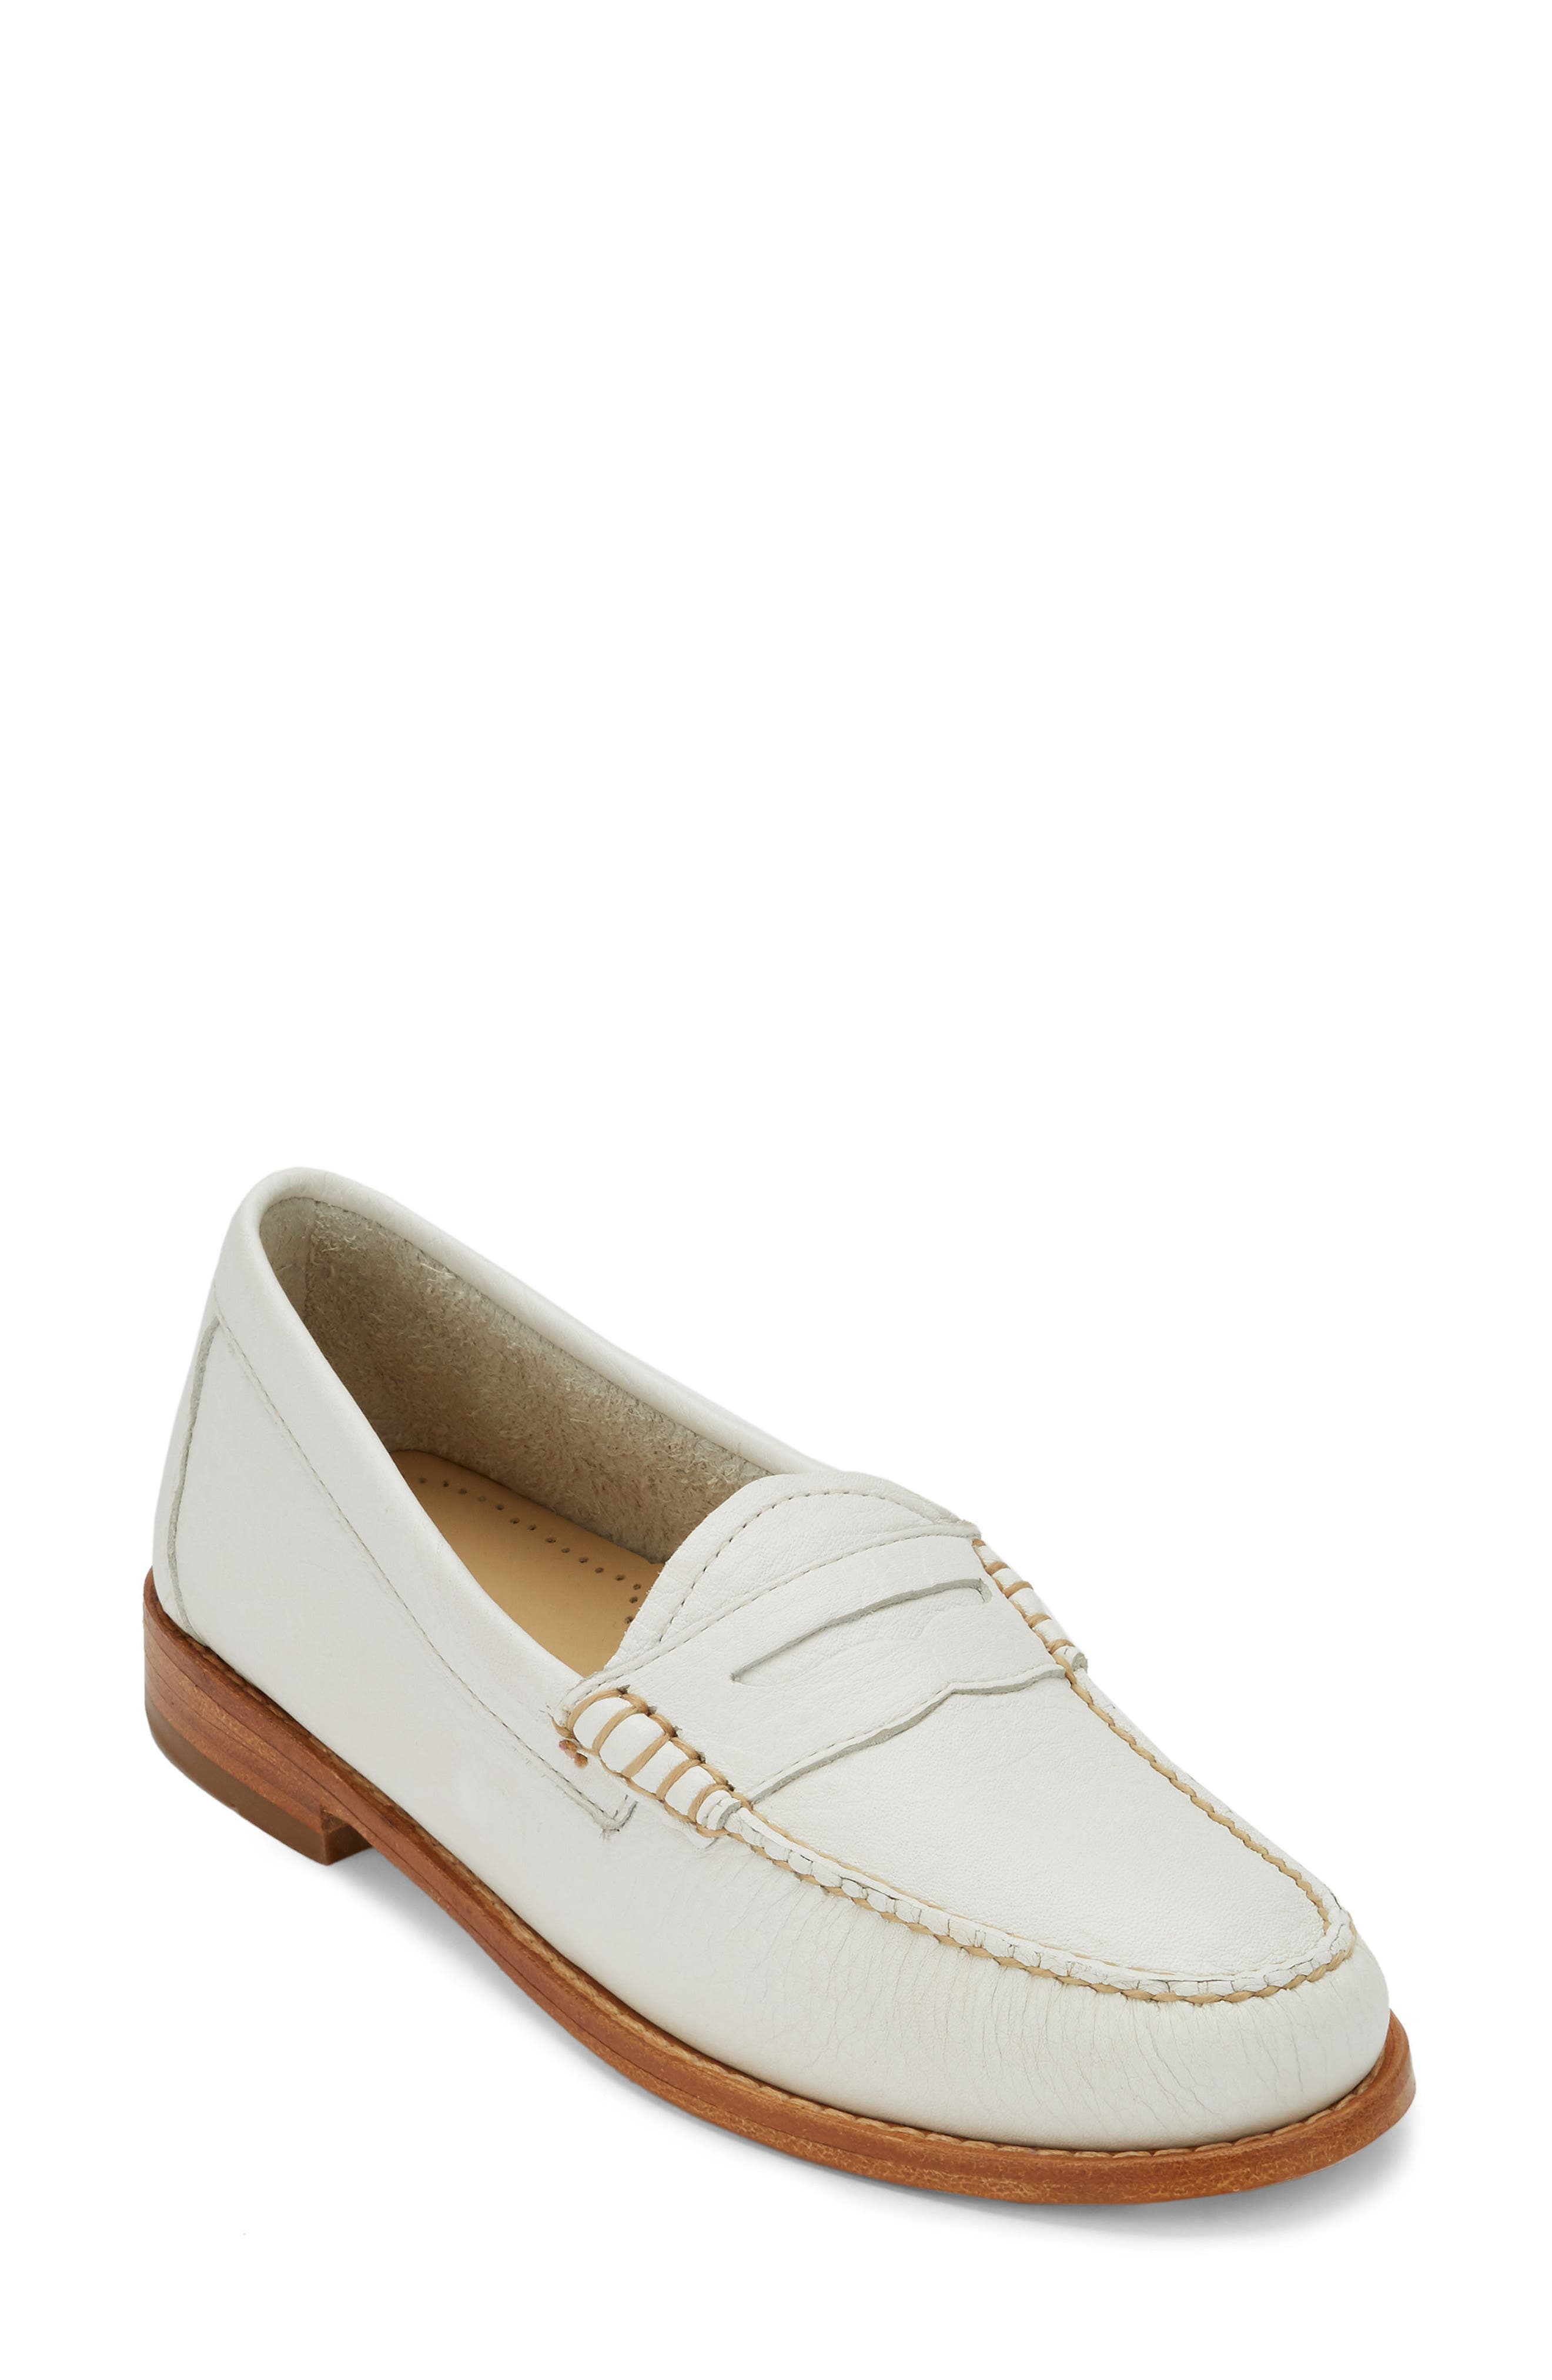 'Whitney' Loafer,                             Main thumbnail 28, color,